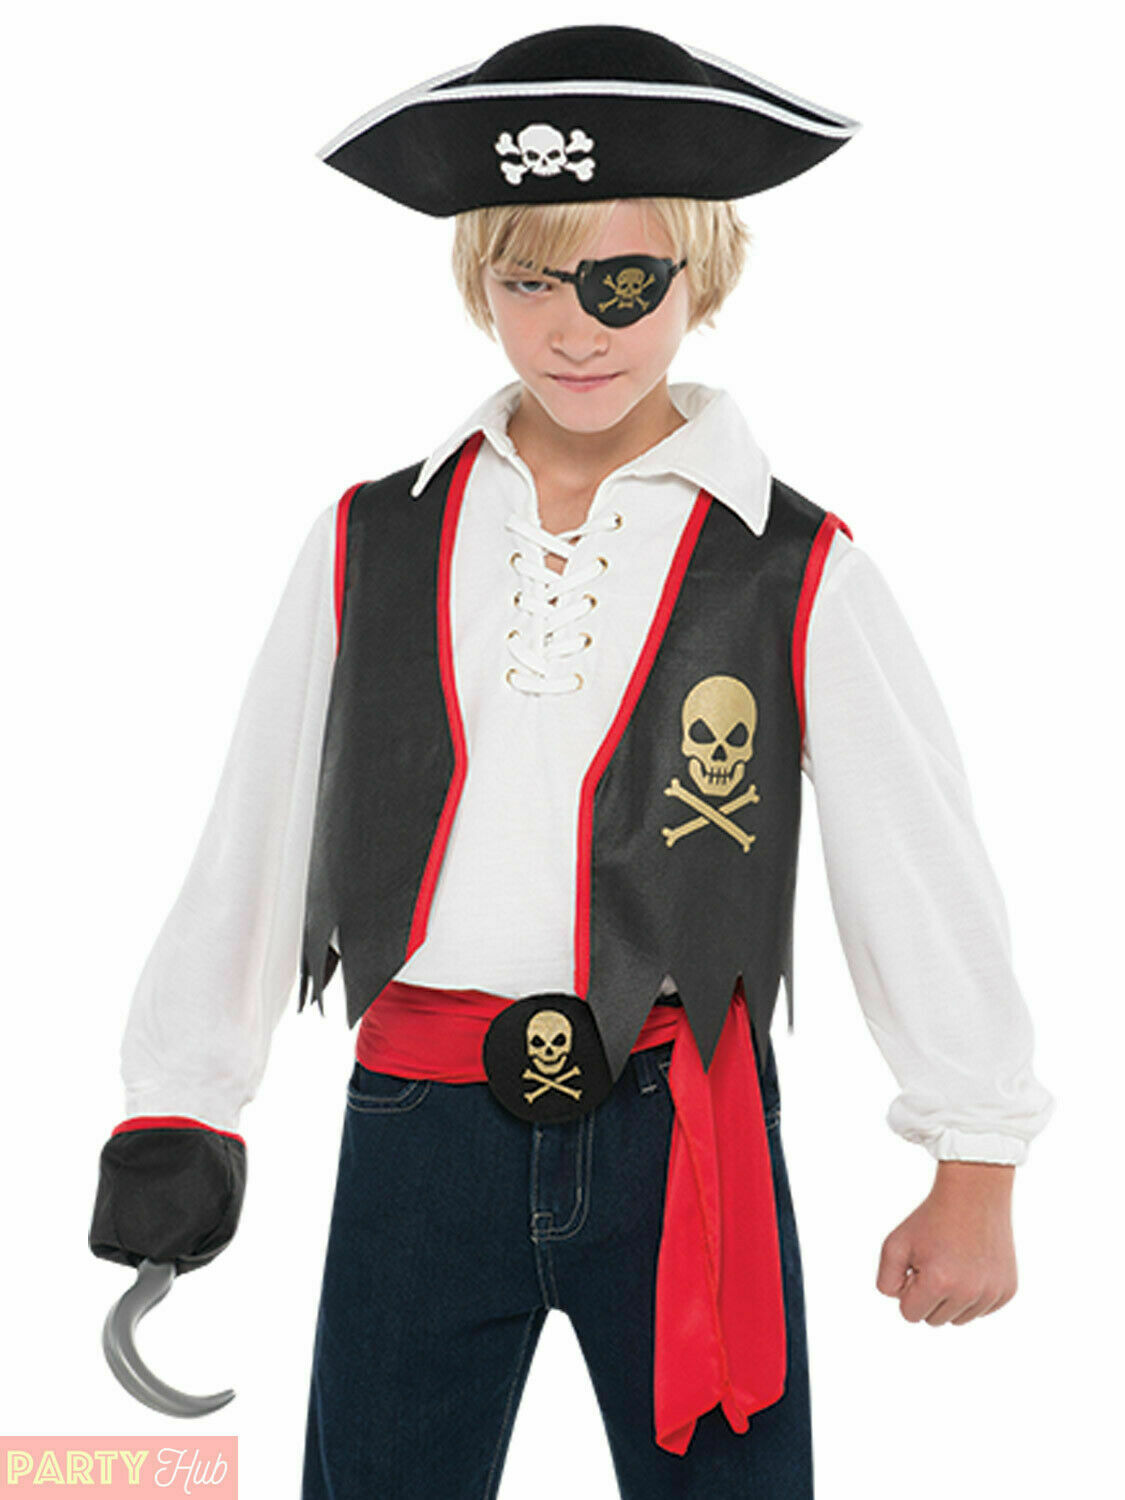 Boys Pirate Costume Child Captain Hook Fancy Dress Book Week Deckhand Outfit 1 of 1FREE Shipping ...  sc 1 st  PicClick UK & BOYS PIRATE COSTUME Child Captain Hook Fancy Dress Book Week ...